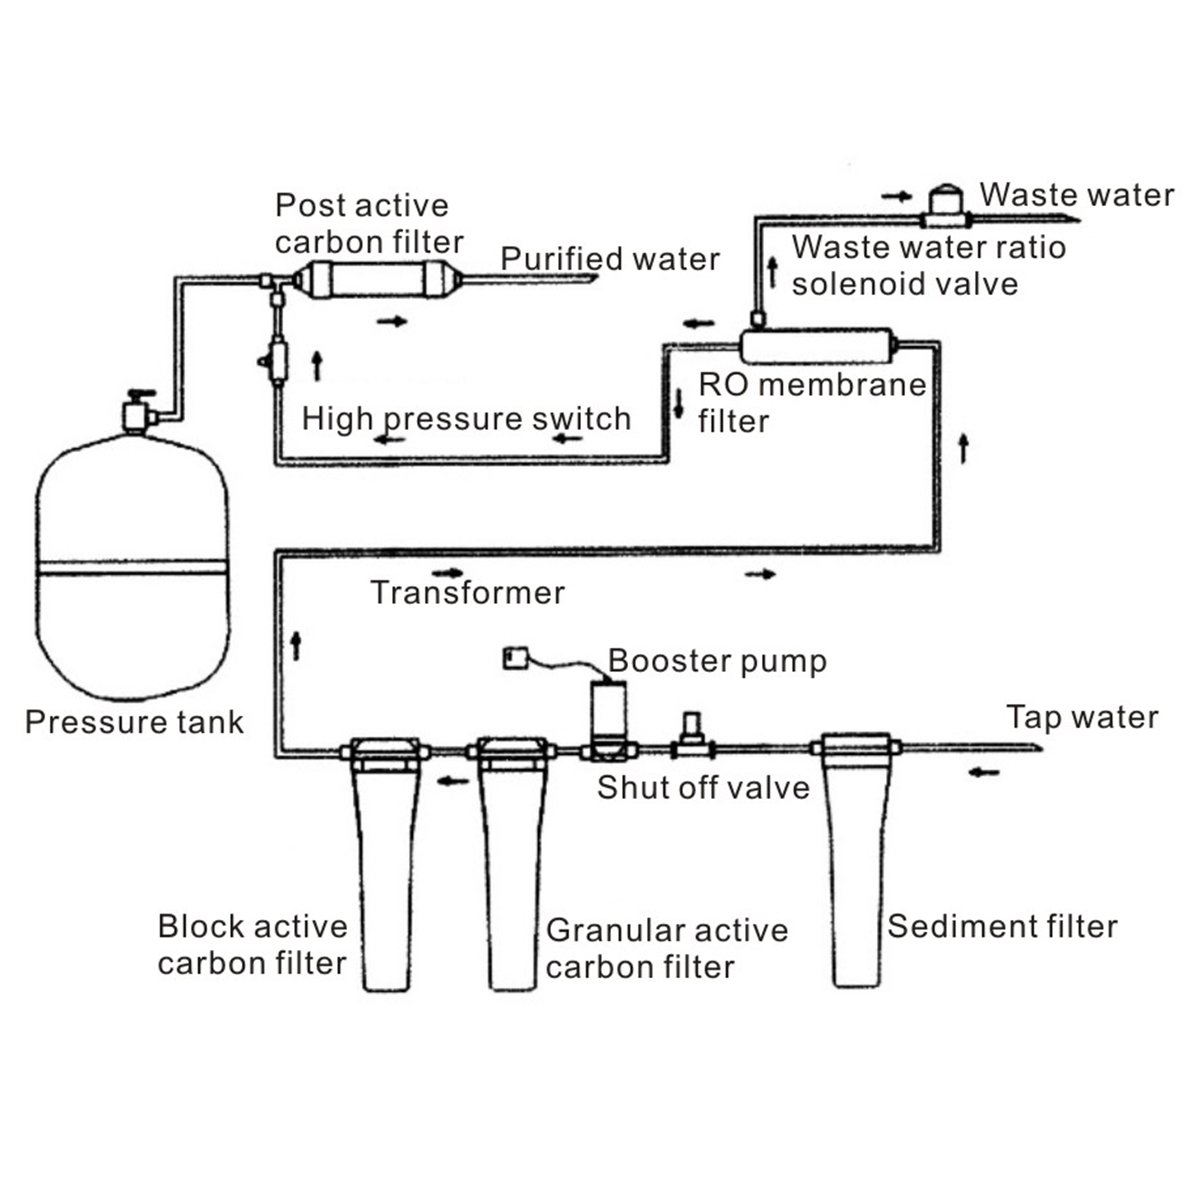 Costway 5 Stage Reverse Osmosis Water Filtration System Ultra Safe Pressure Tank Schematic Under Sink Home Drinking Filter